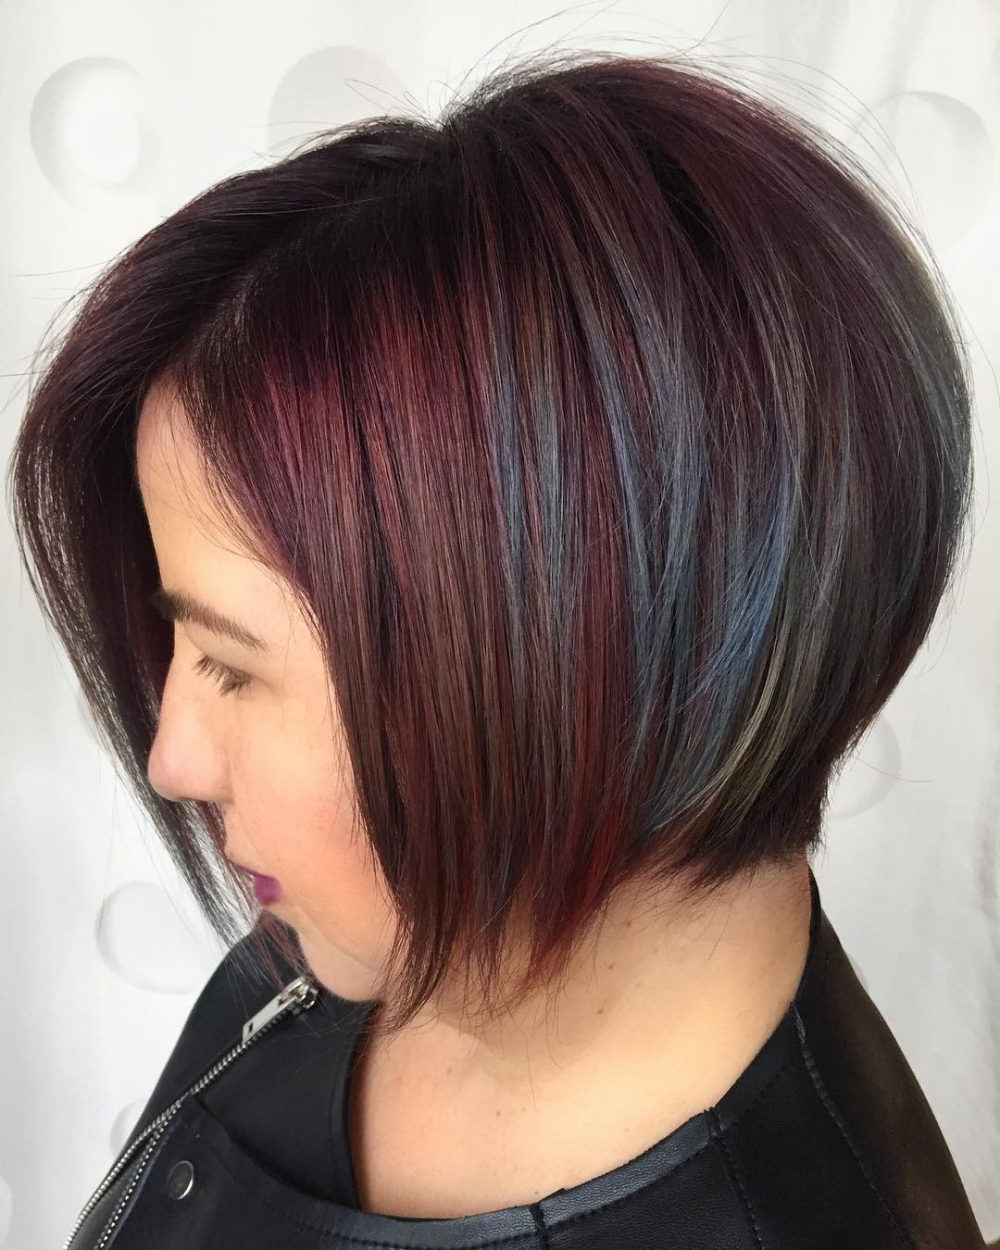 34 Greatest Short Haircuts And Hairstyles For Thick Hair For 2018 Throughout Short Hairstyles For Thick Hair And Long Face (View 23 of 25)